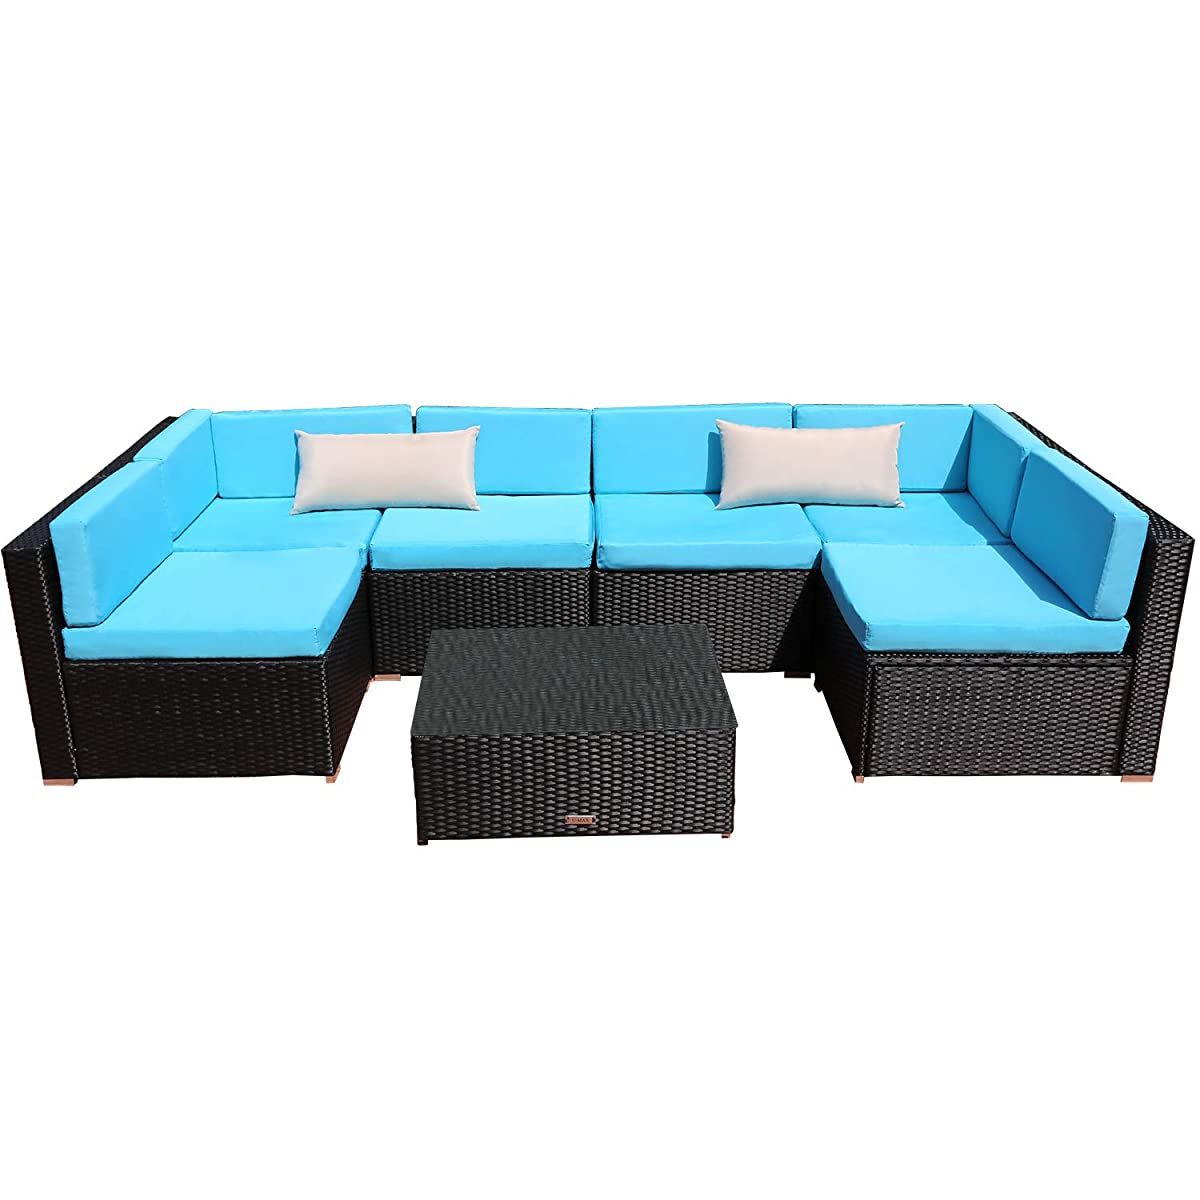 Yardeen 7-Piece Outdoor Patio Furniture Rattan Wicker Sectional Sofa Set Backyard Furniture Kit Indoor and Outdoor with Tea Table Color Blue